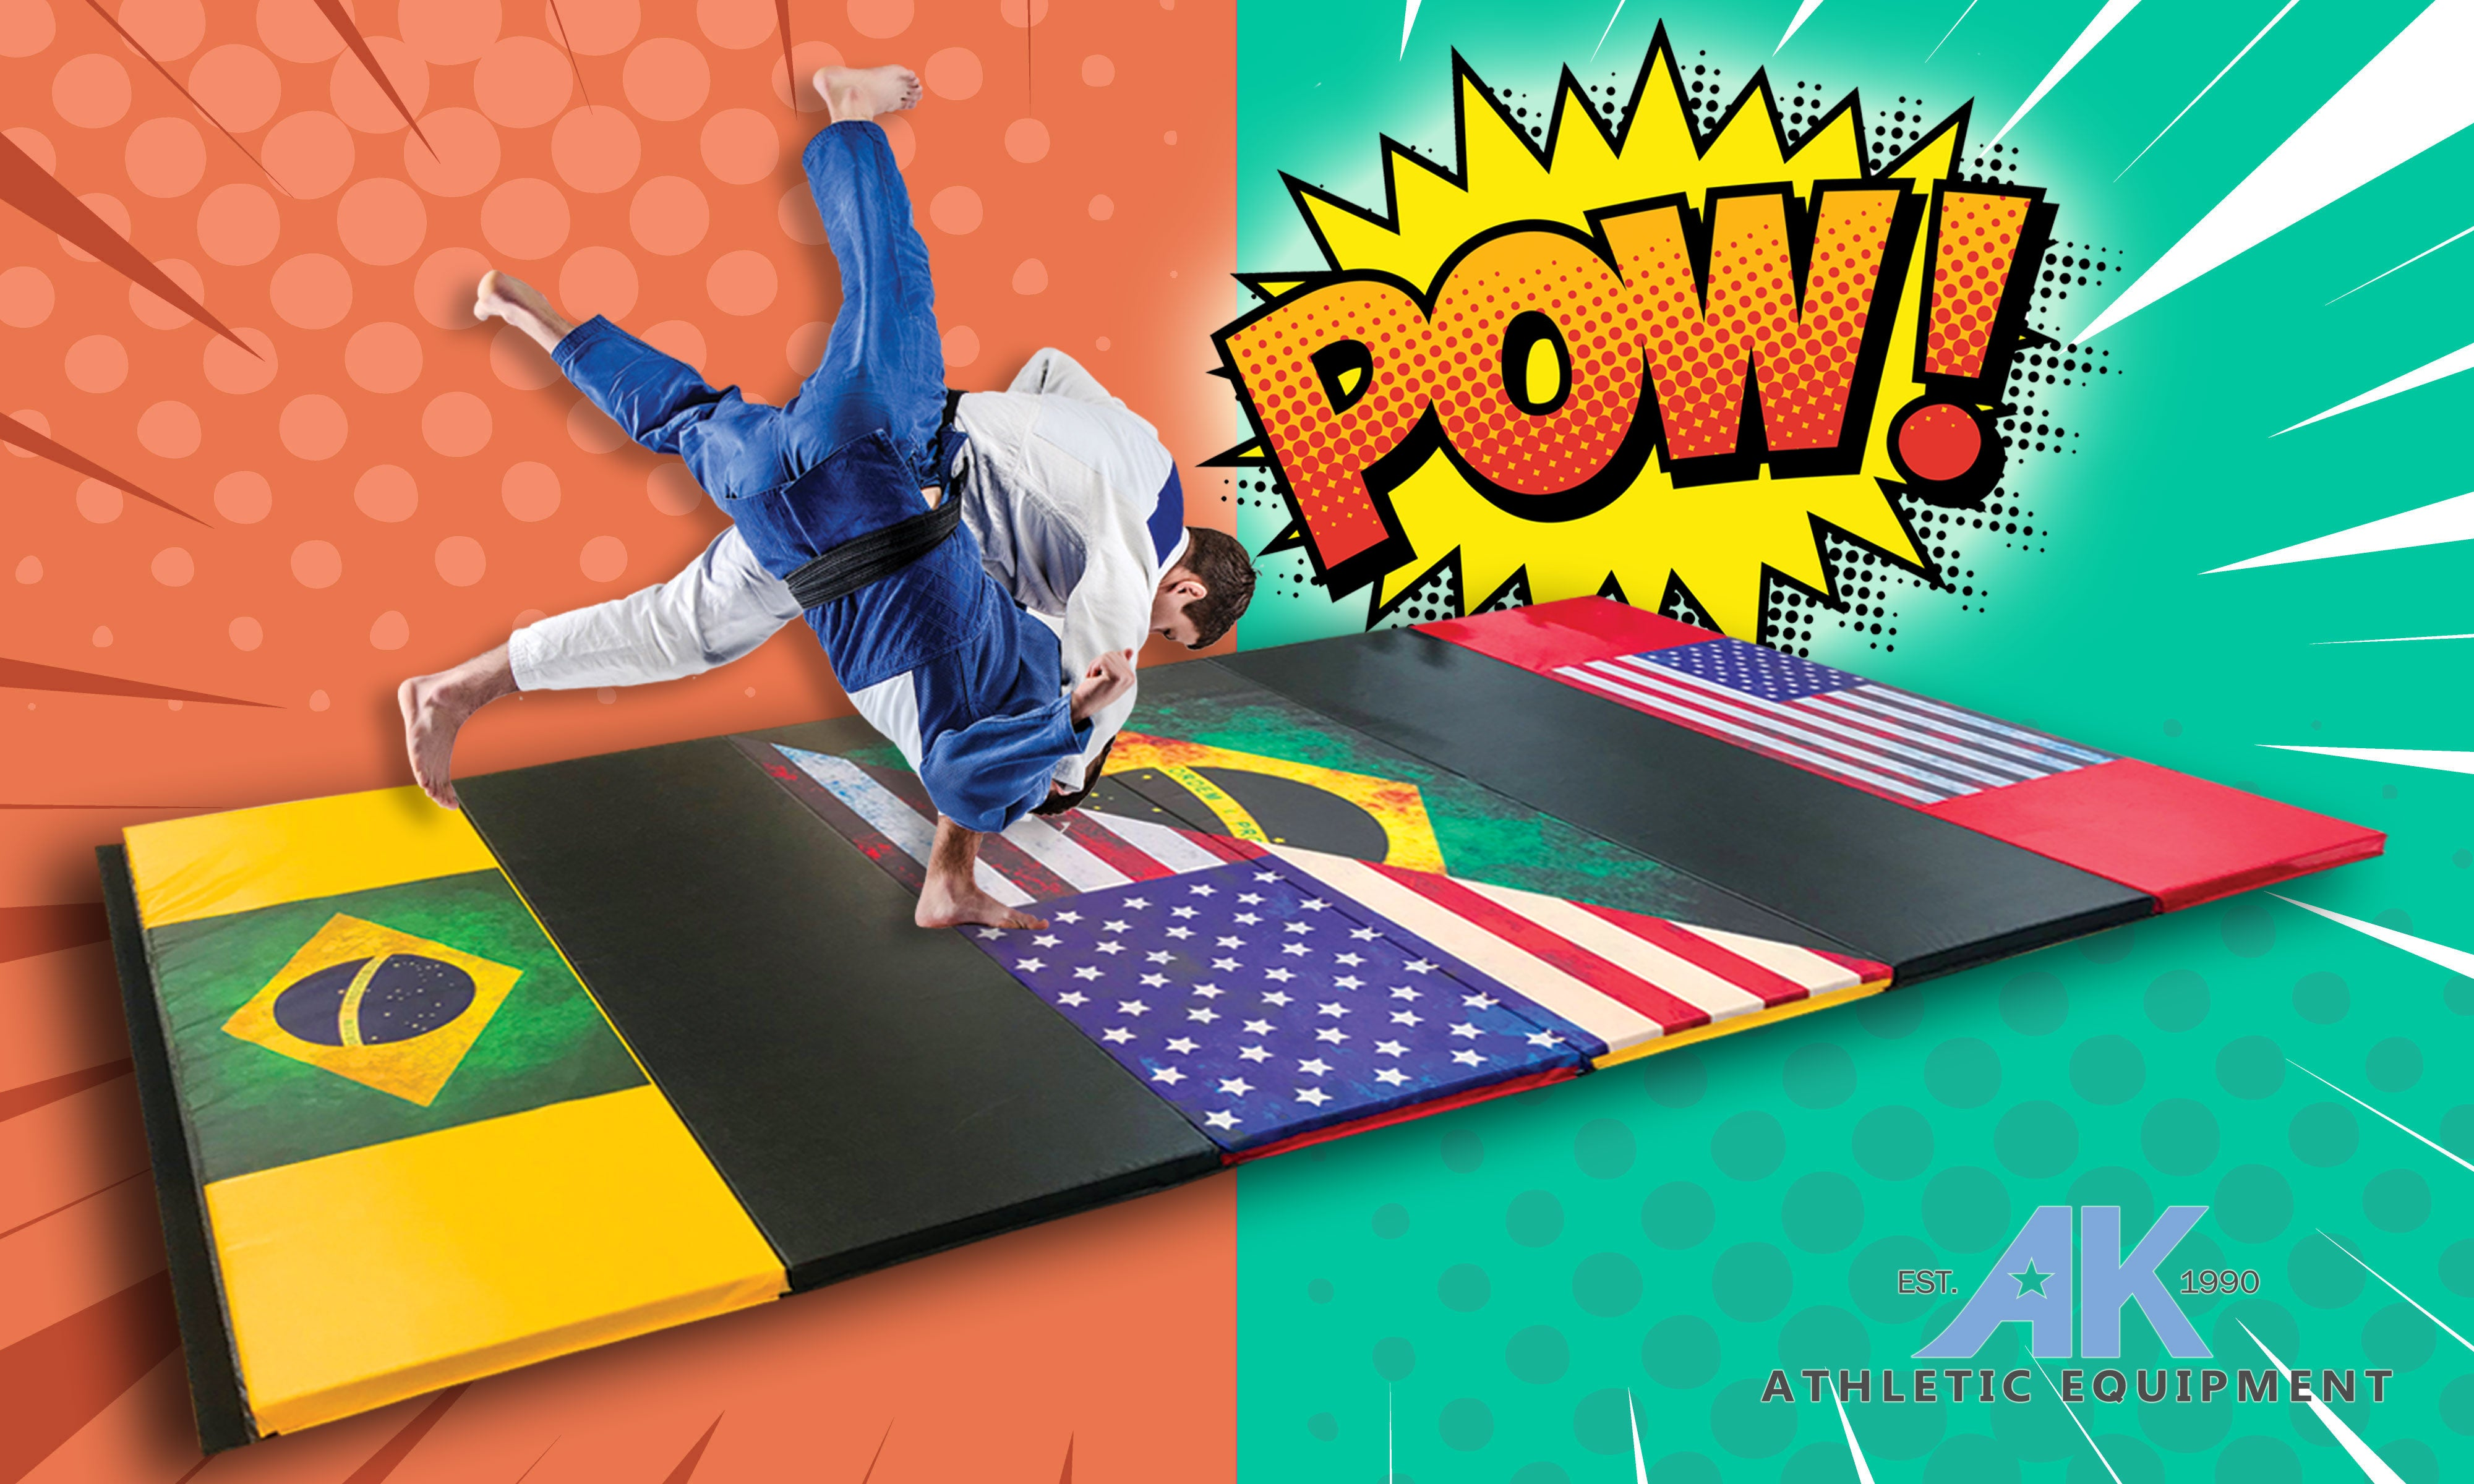 acromat name equipment small air mat cheer inflatable product chongqi cheap home sale gymnastics whole wrestling brand for mats